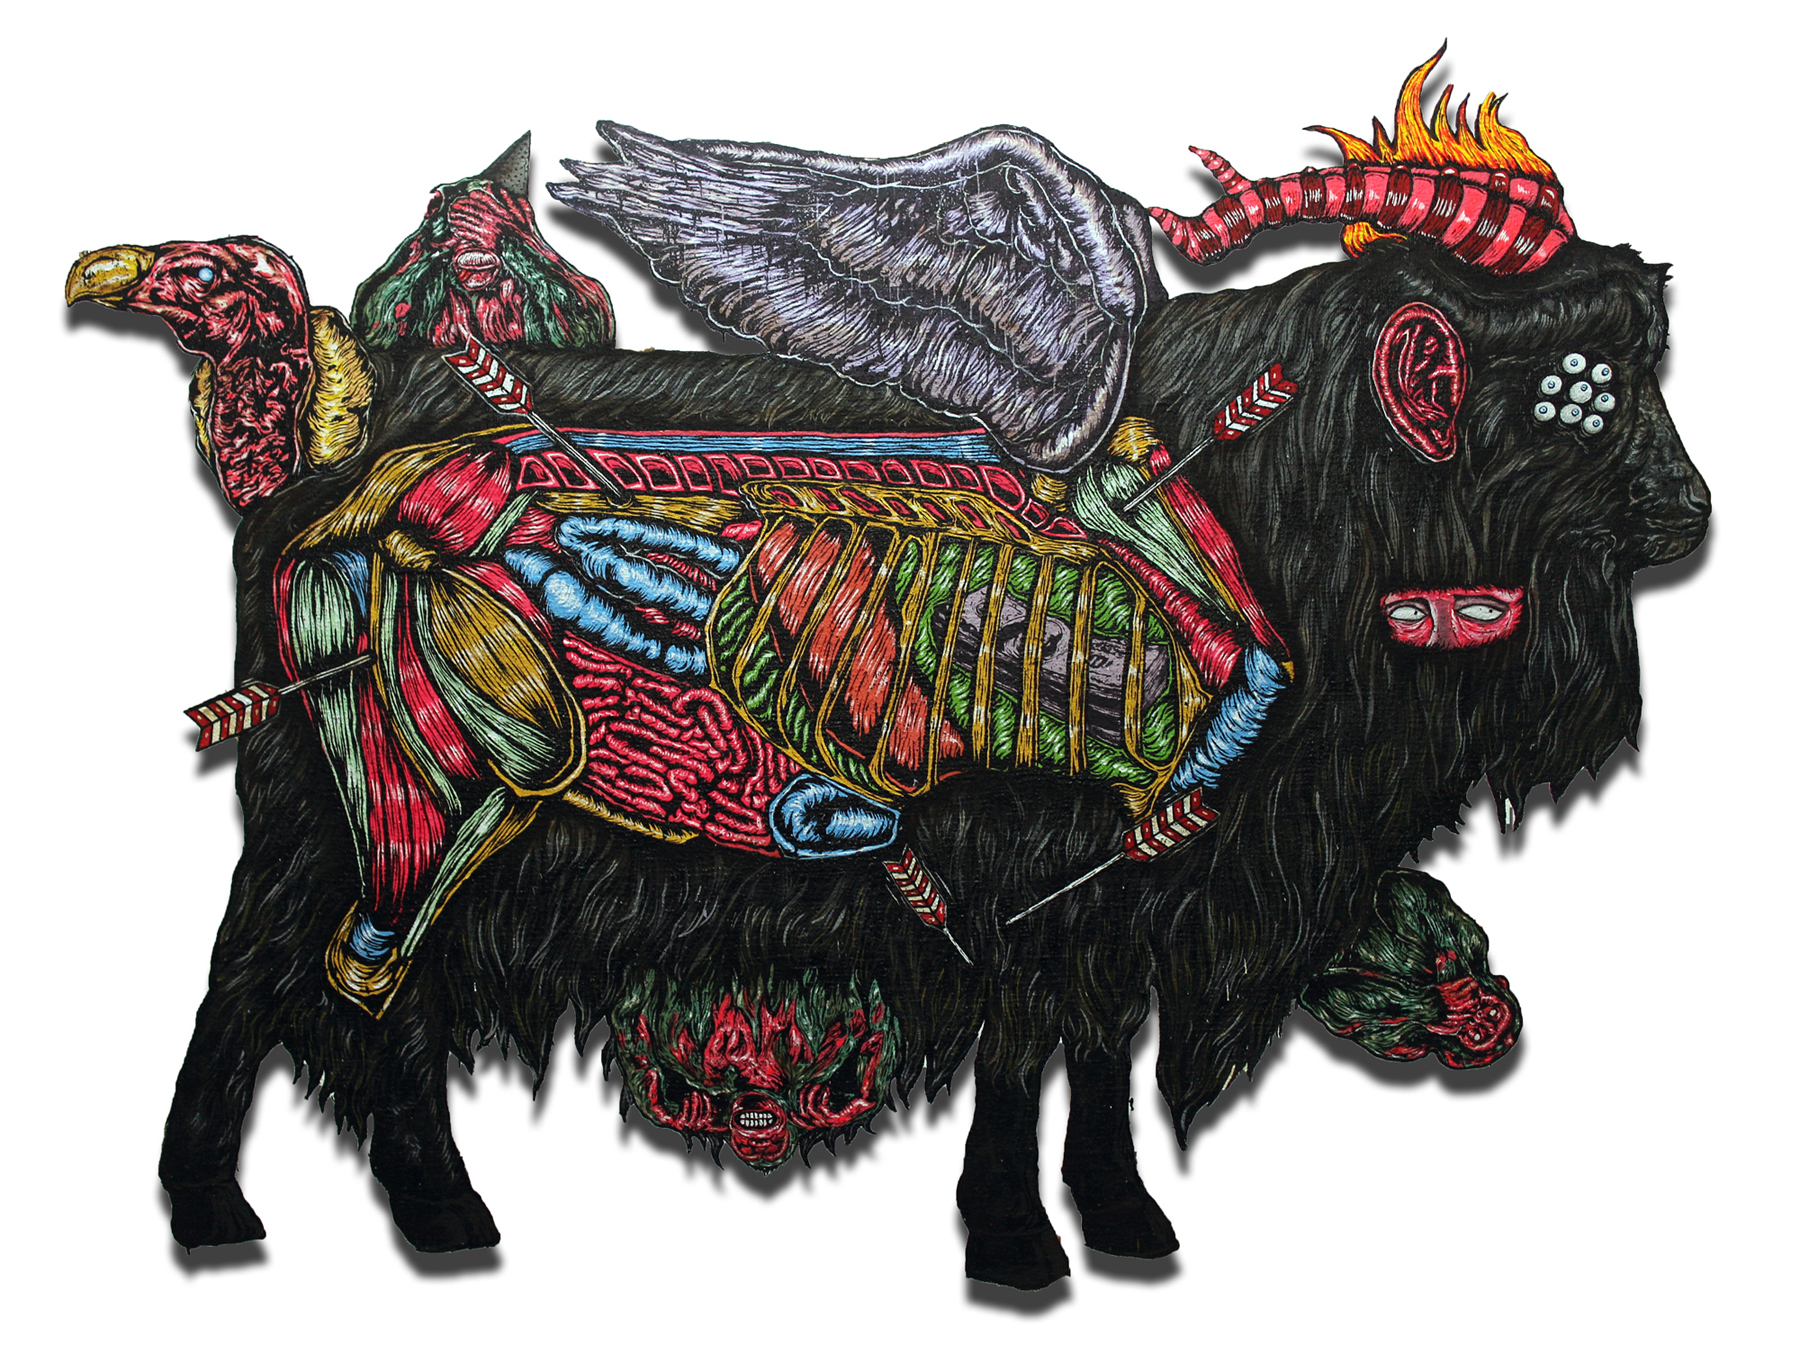 The Black Goat Who Defended His Master